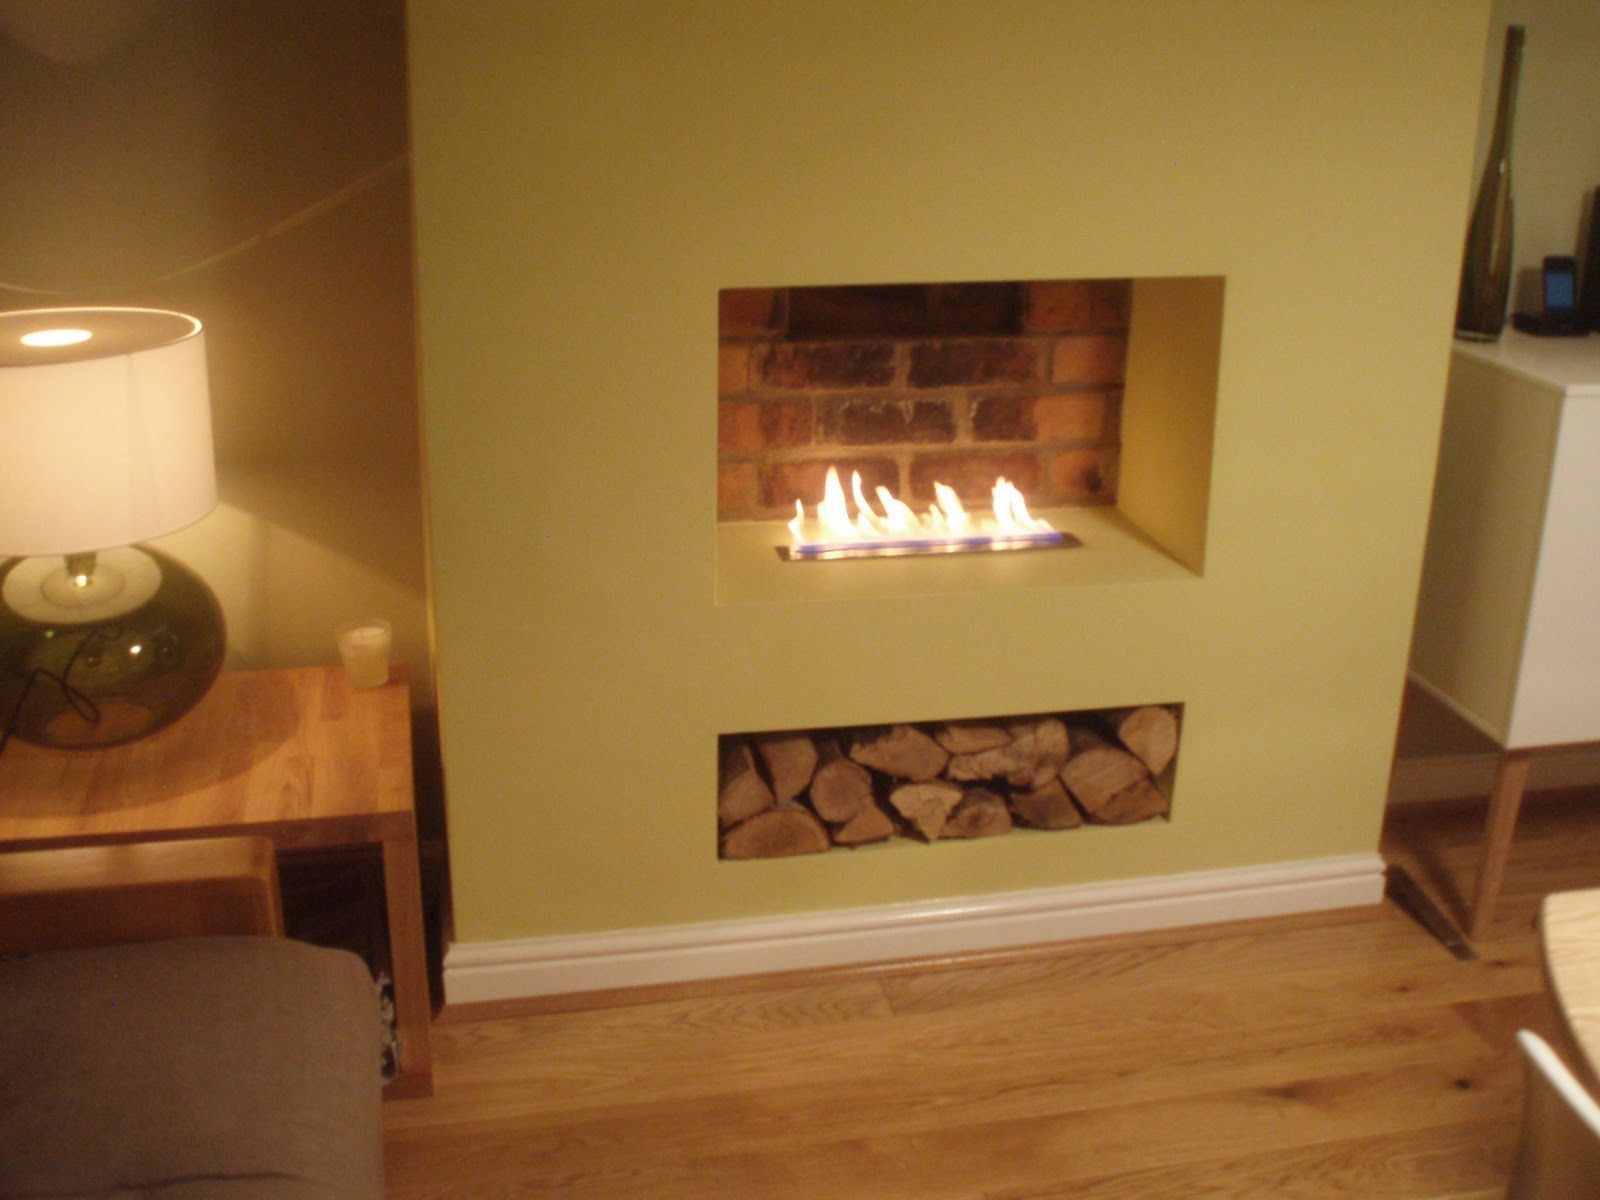 Gel Fireplaces - Bio Fires - Official company blog: DIY fireplace - how to  make